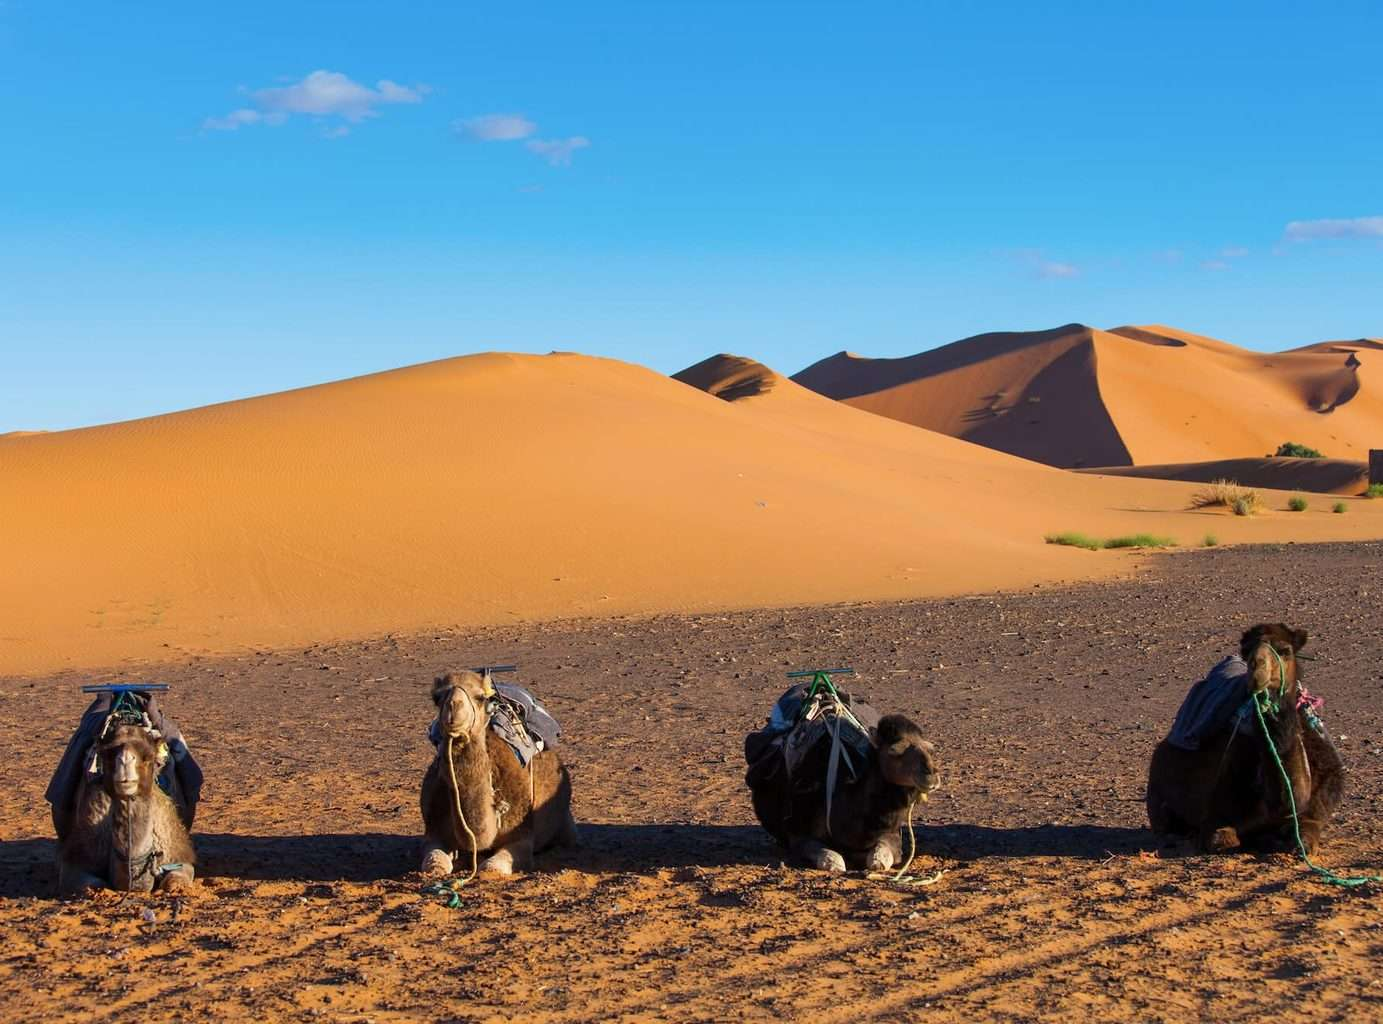 Luxury Abu Dhabi Holidays - Camels in desert view